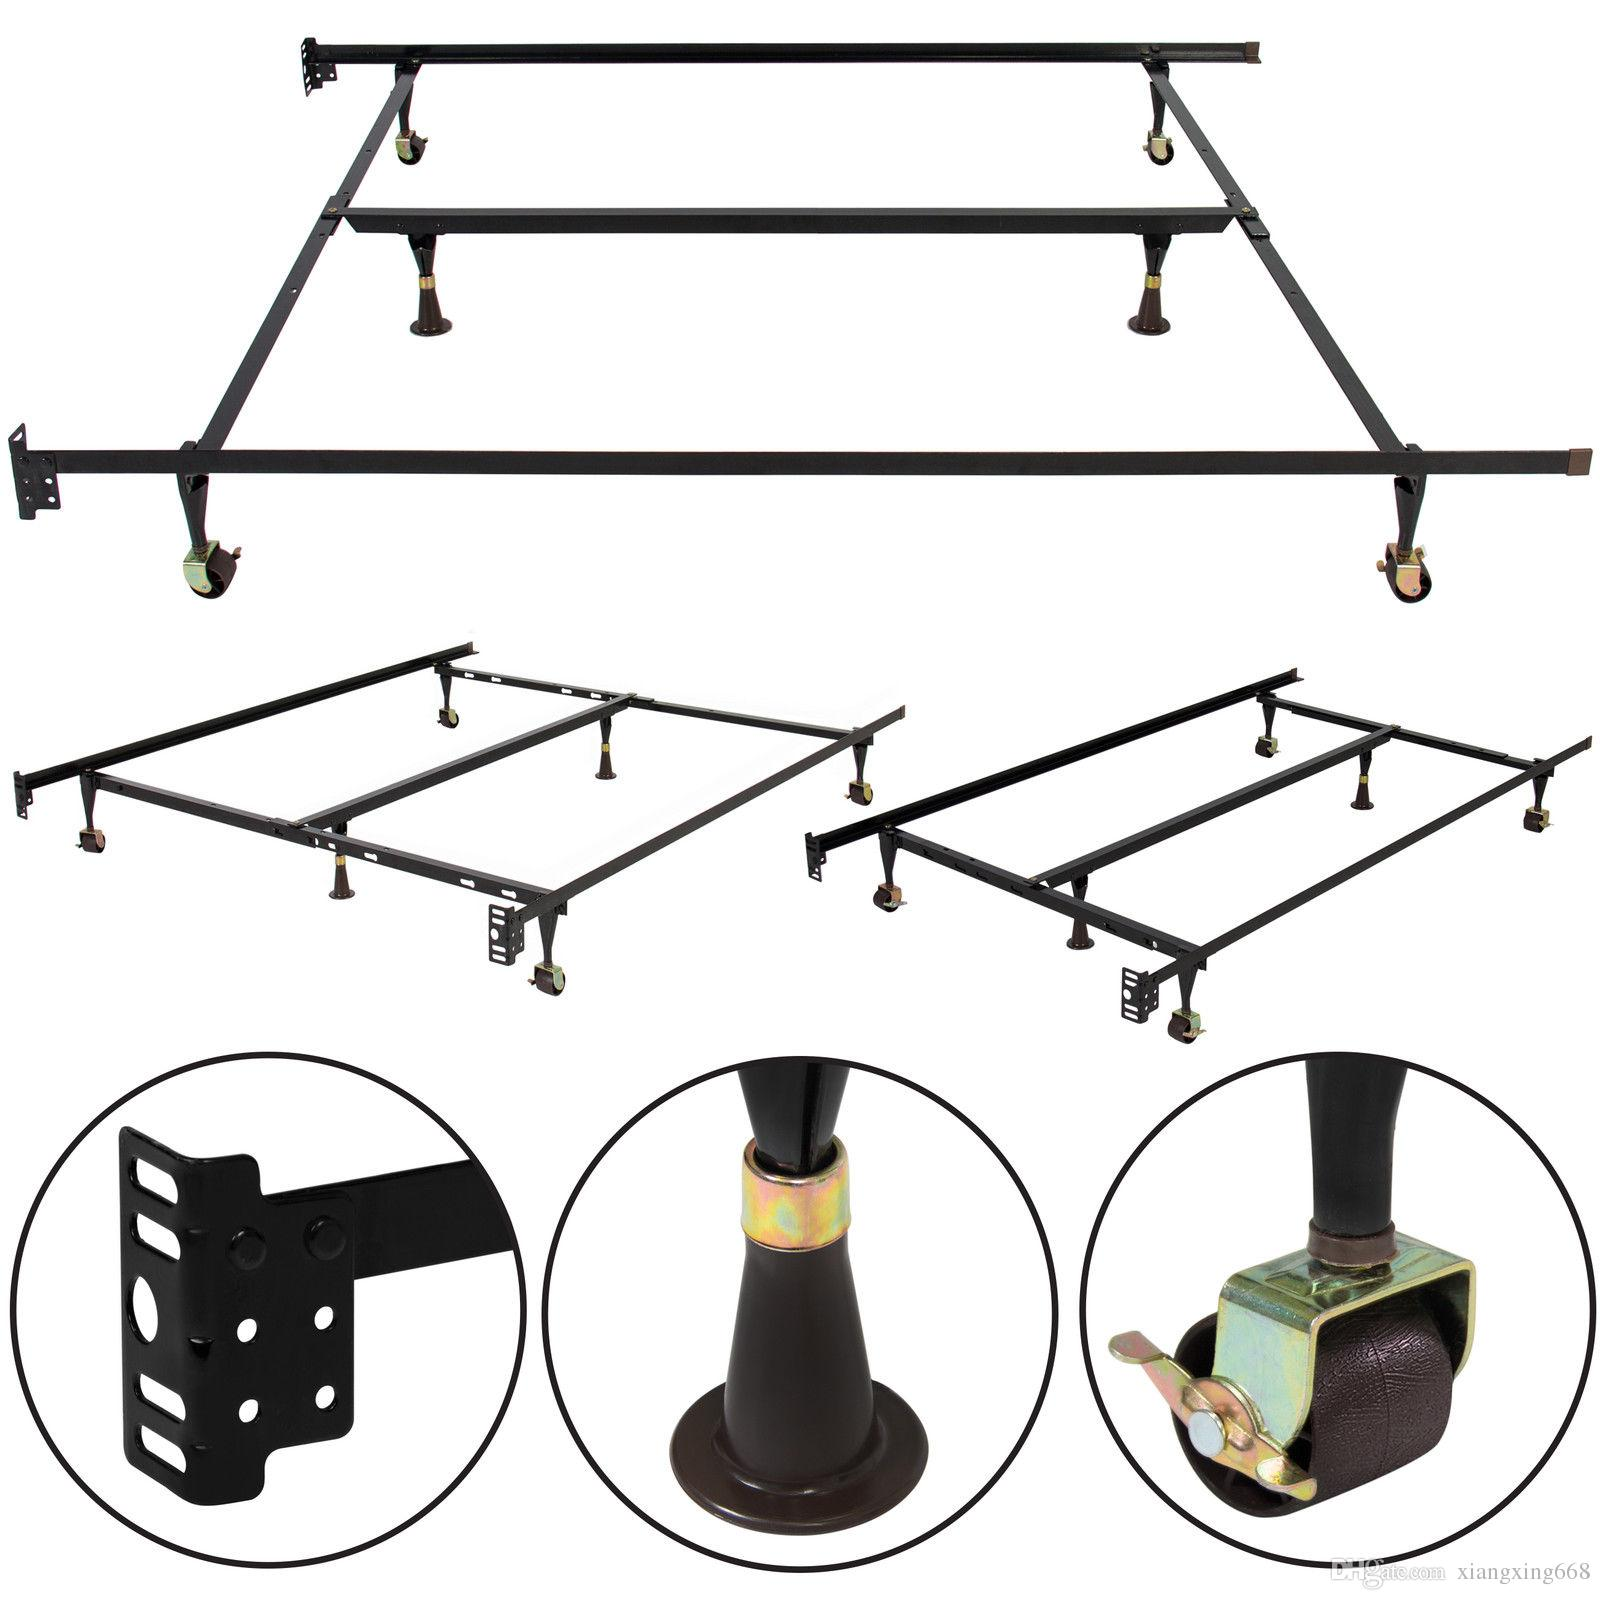 2019 Metal Bed Frame Adjustable Queen Full Twin Size Center Support